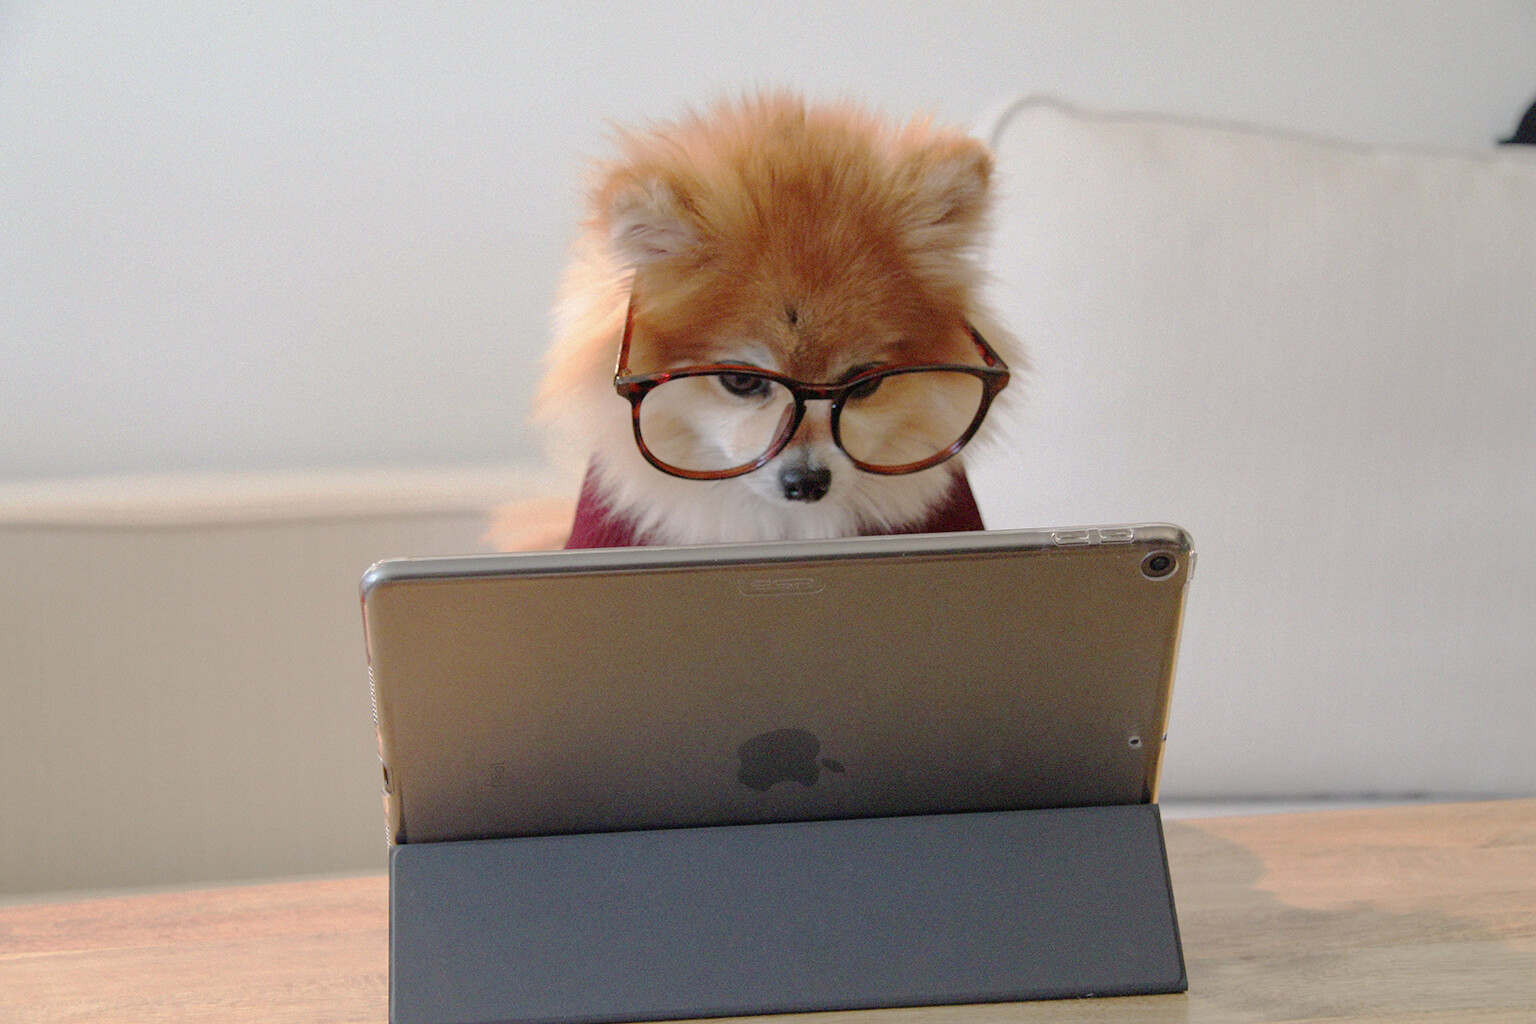 Pomeranian dog wearing glasses looking at a tablet screen.